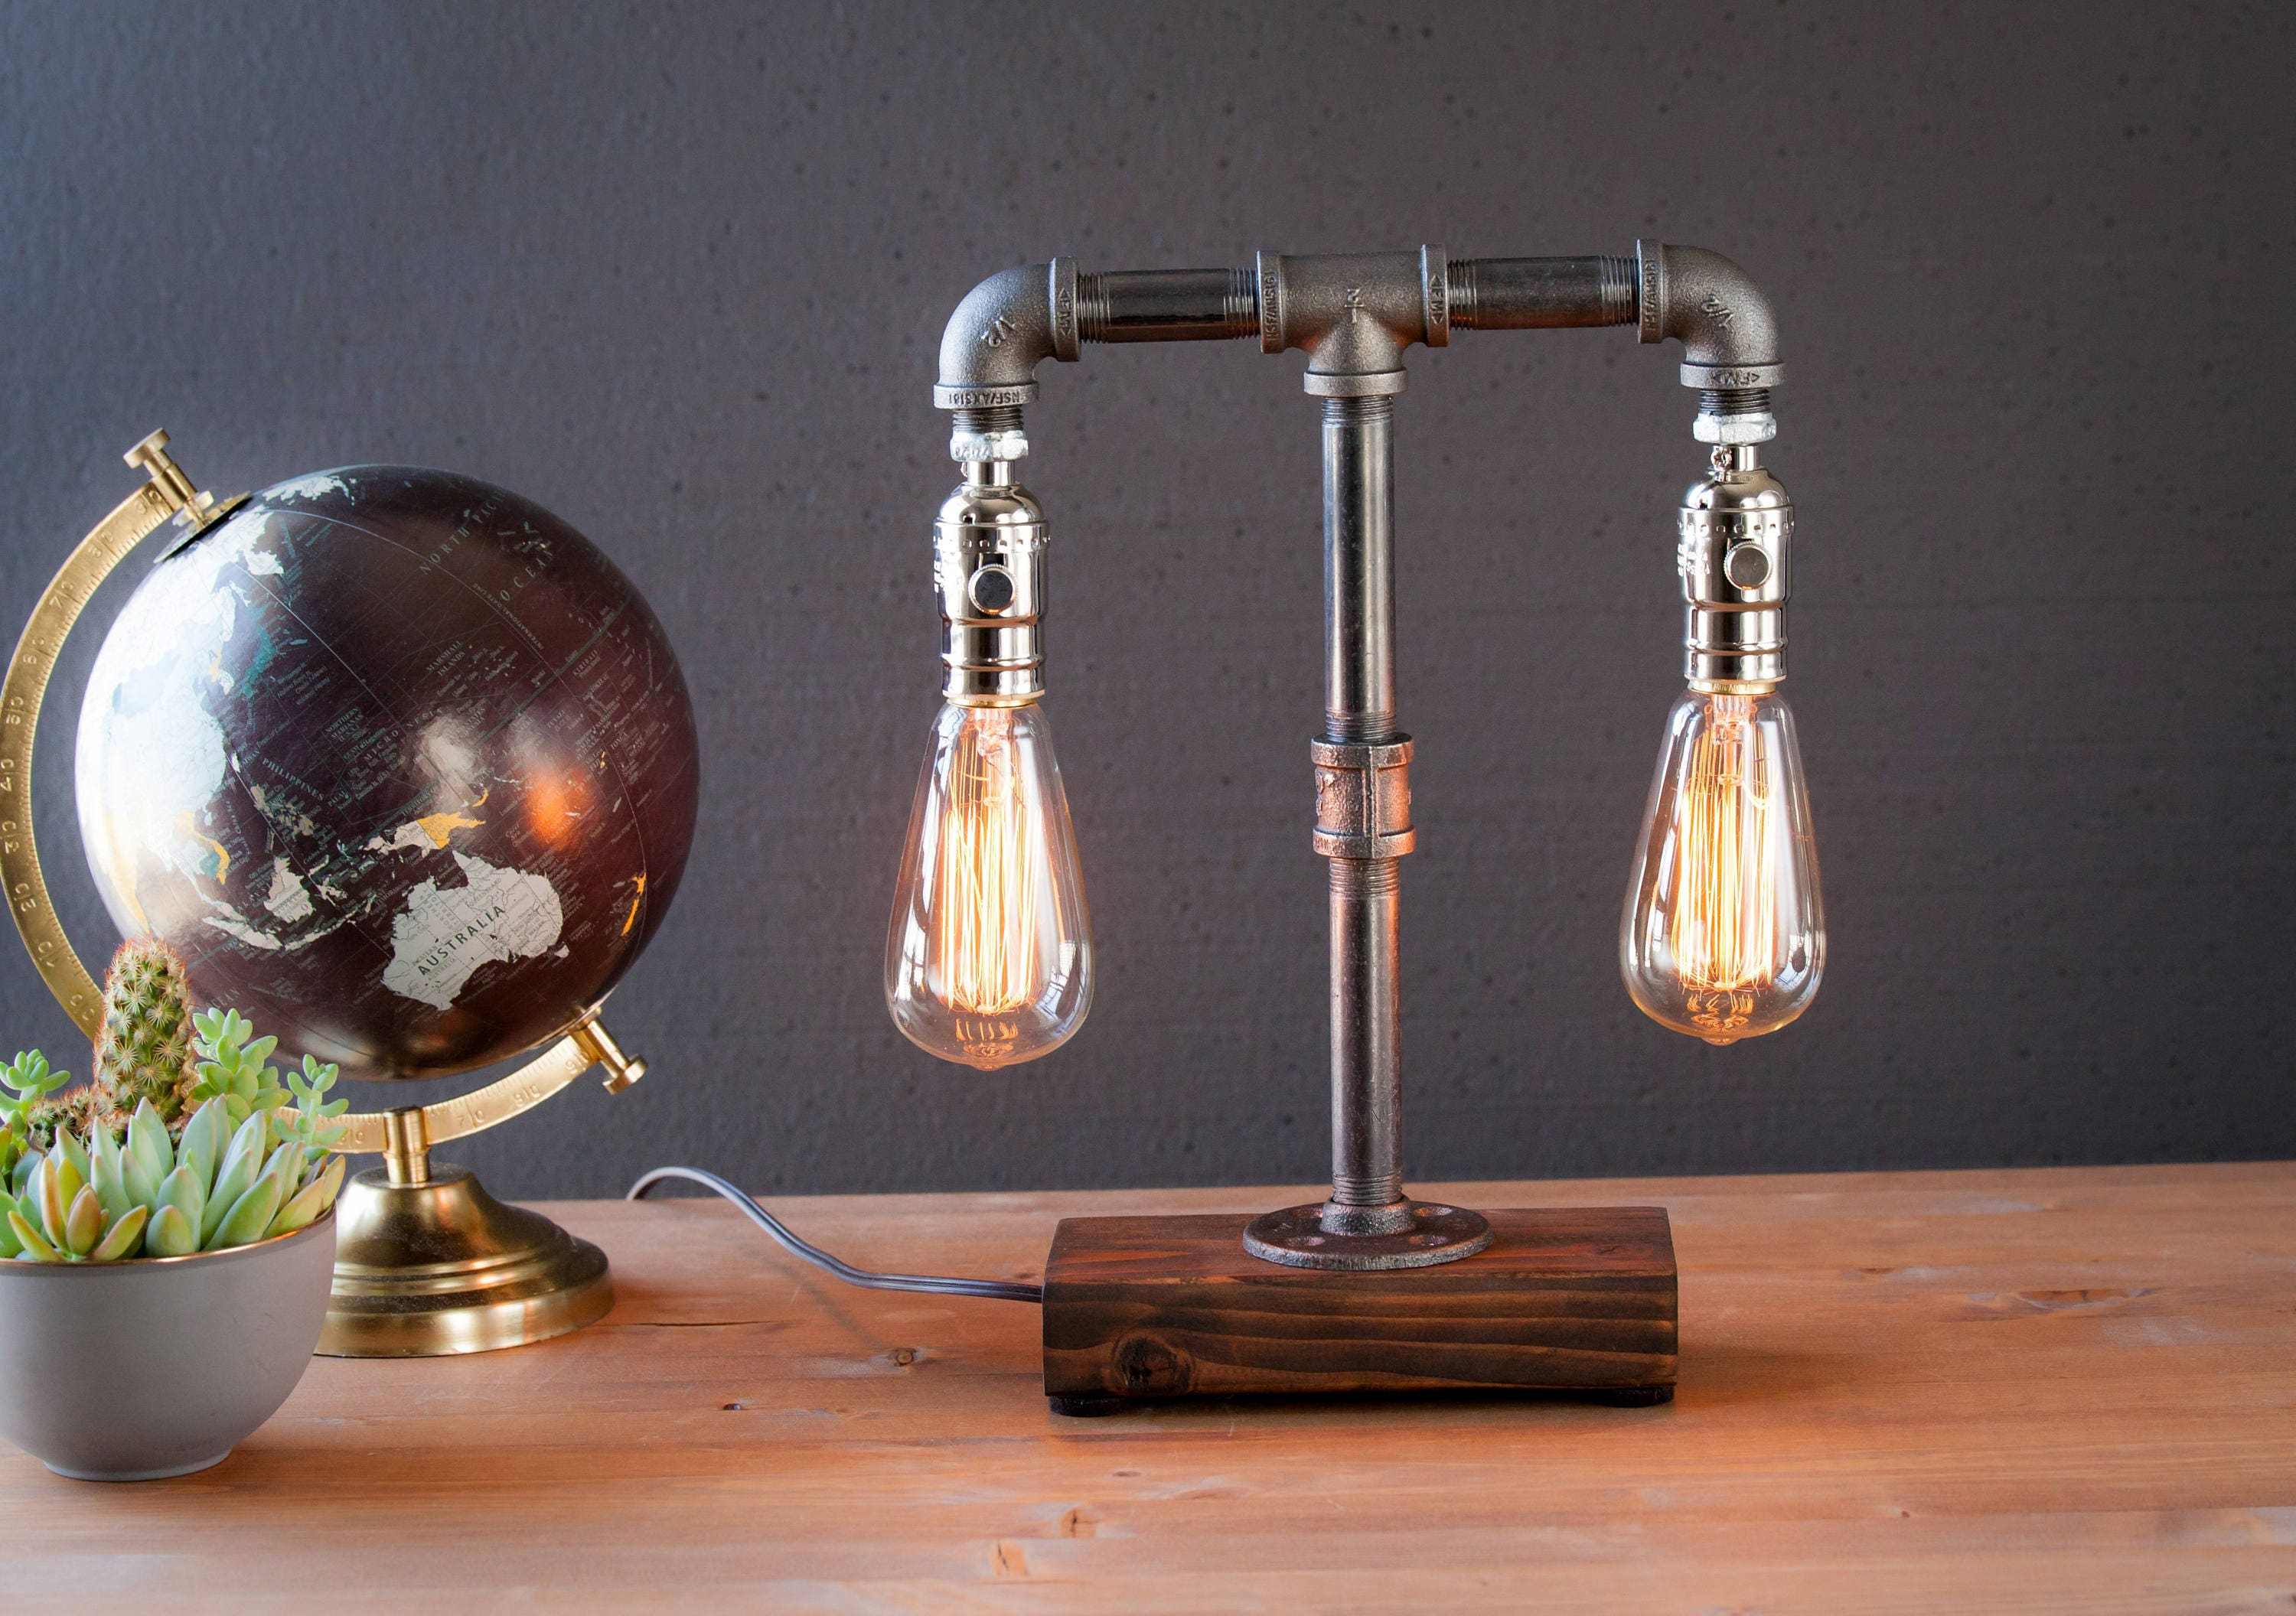 Edison Lamp Rustic Decor Unique Table Lamp Industrial